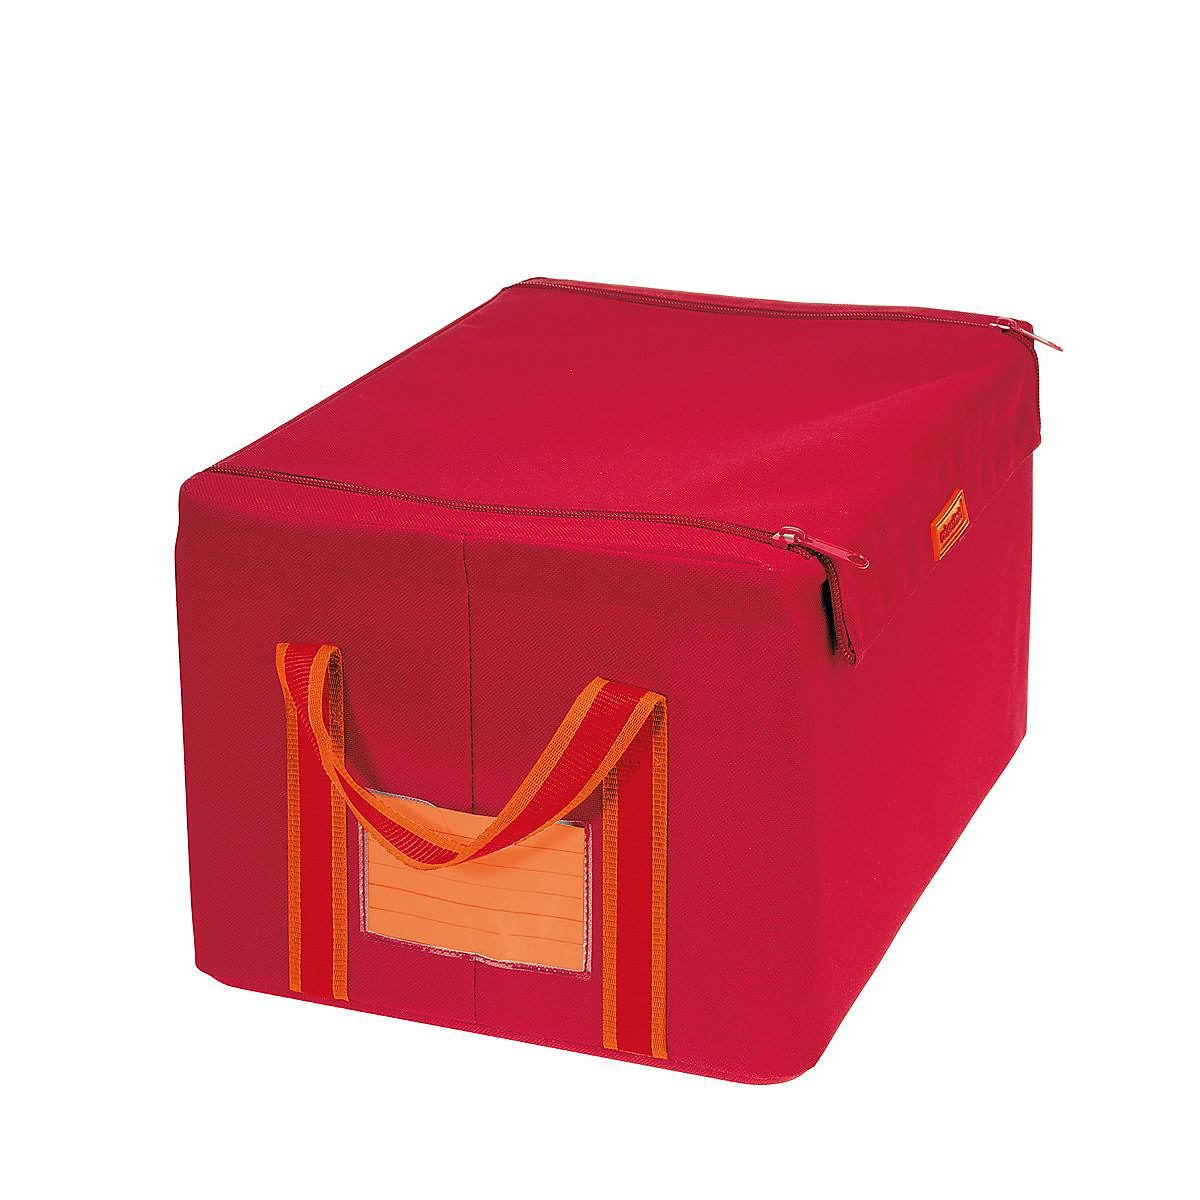 REISENTHEL® Storagebox S